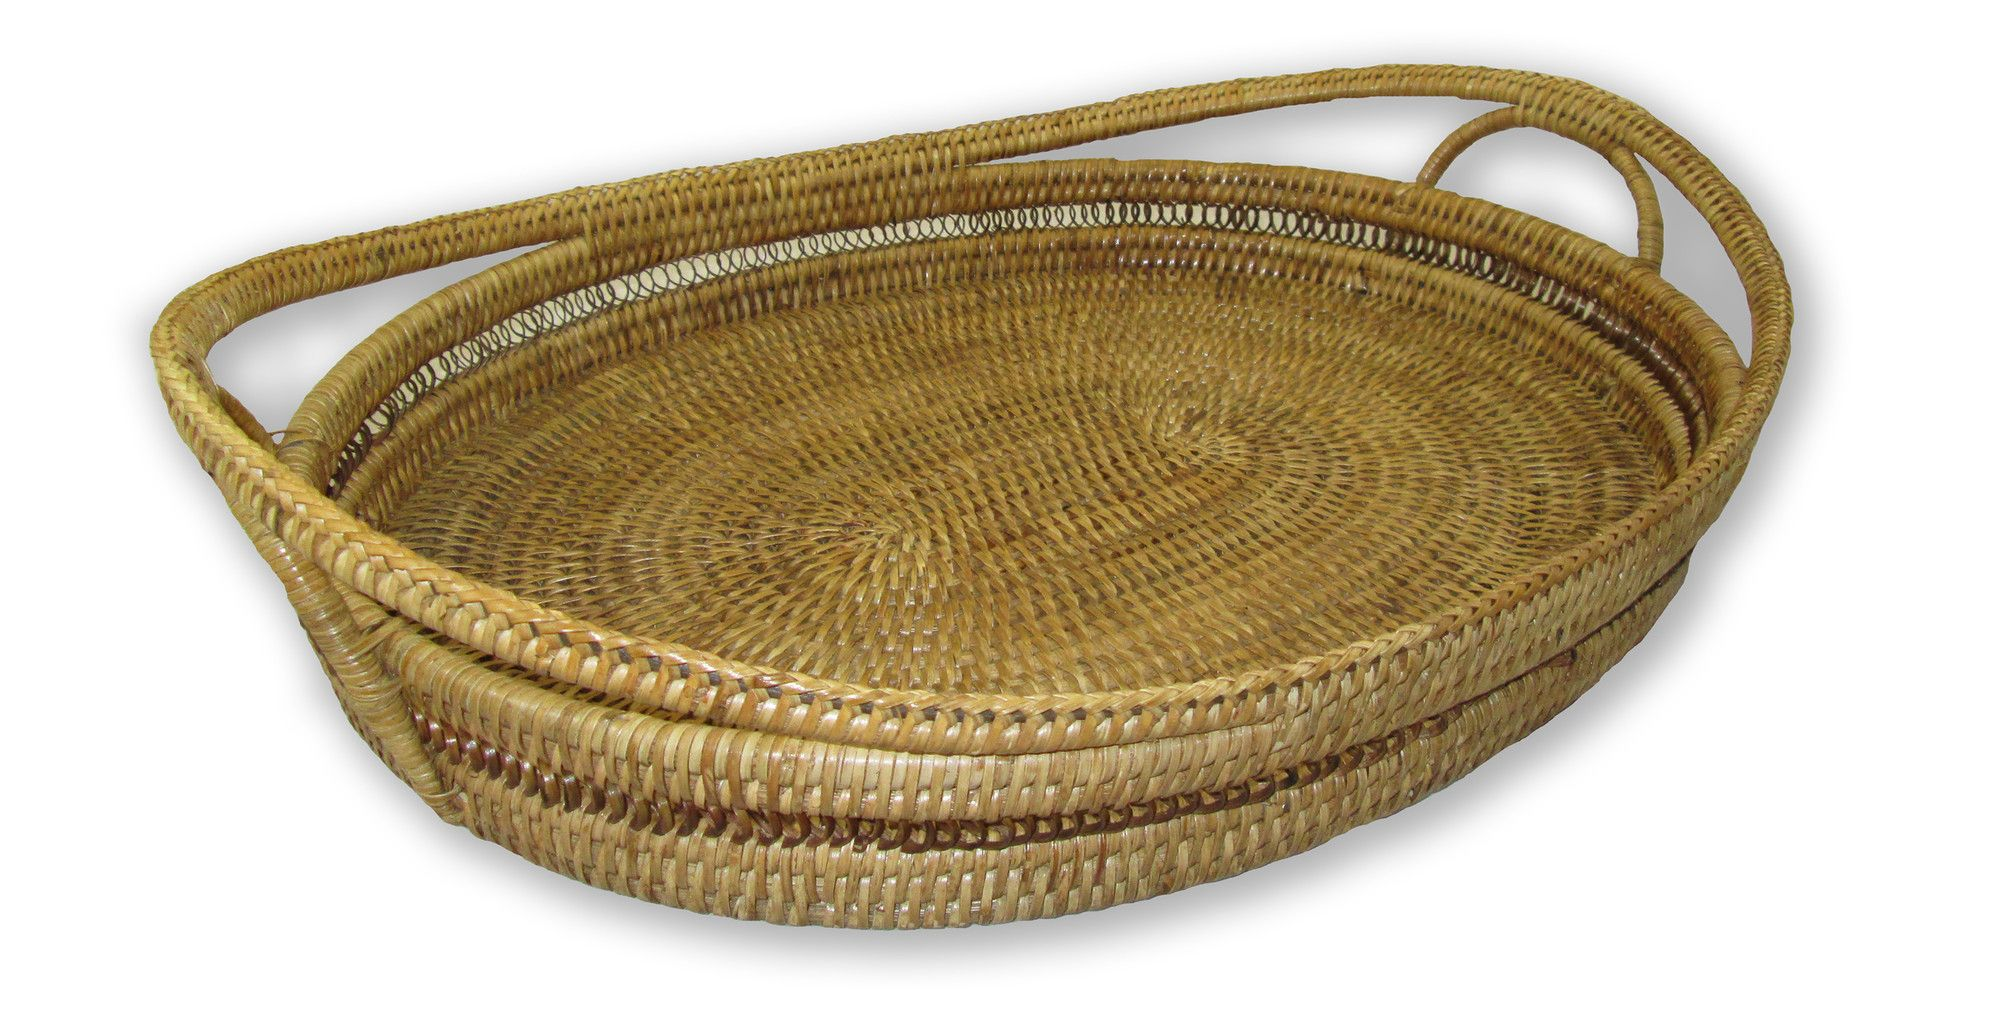 Rattan Oval Tray with High Handles